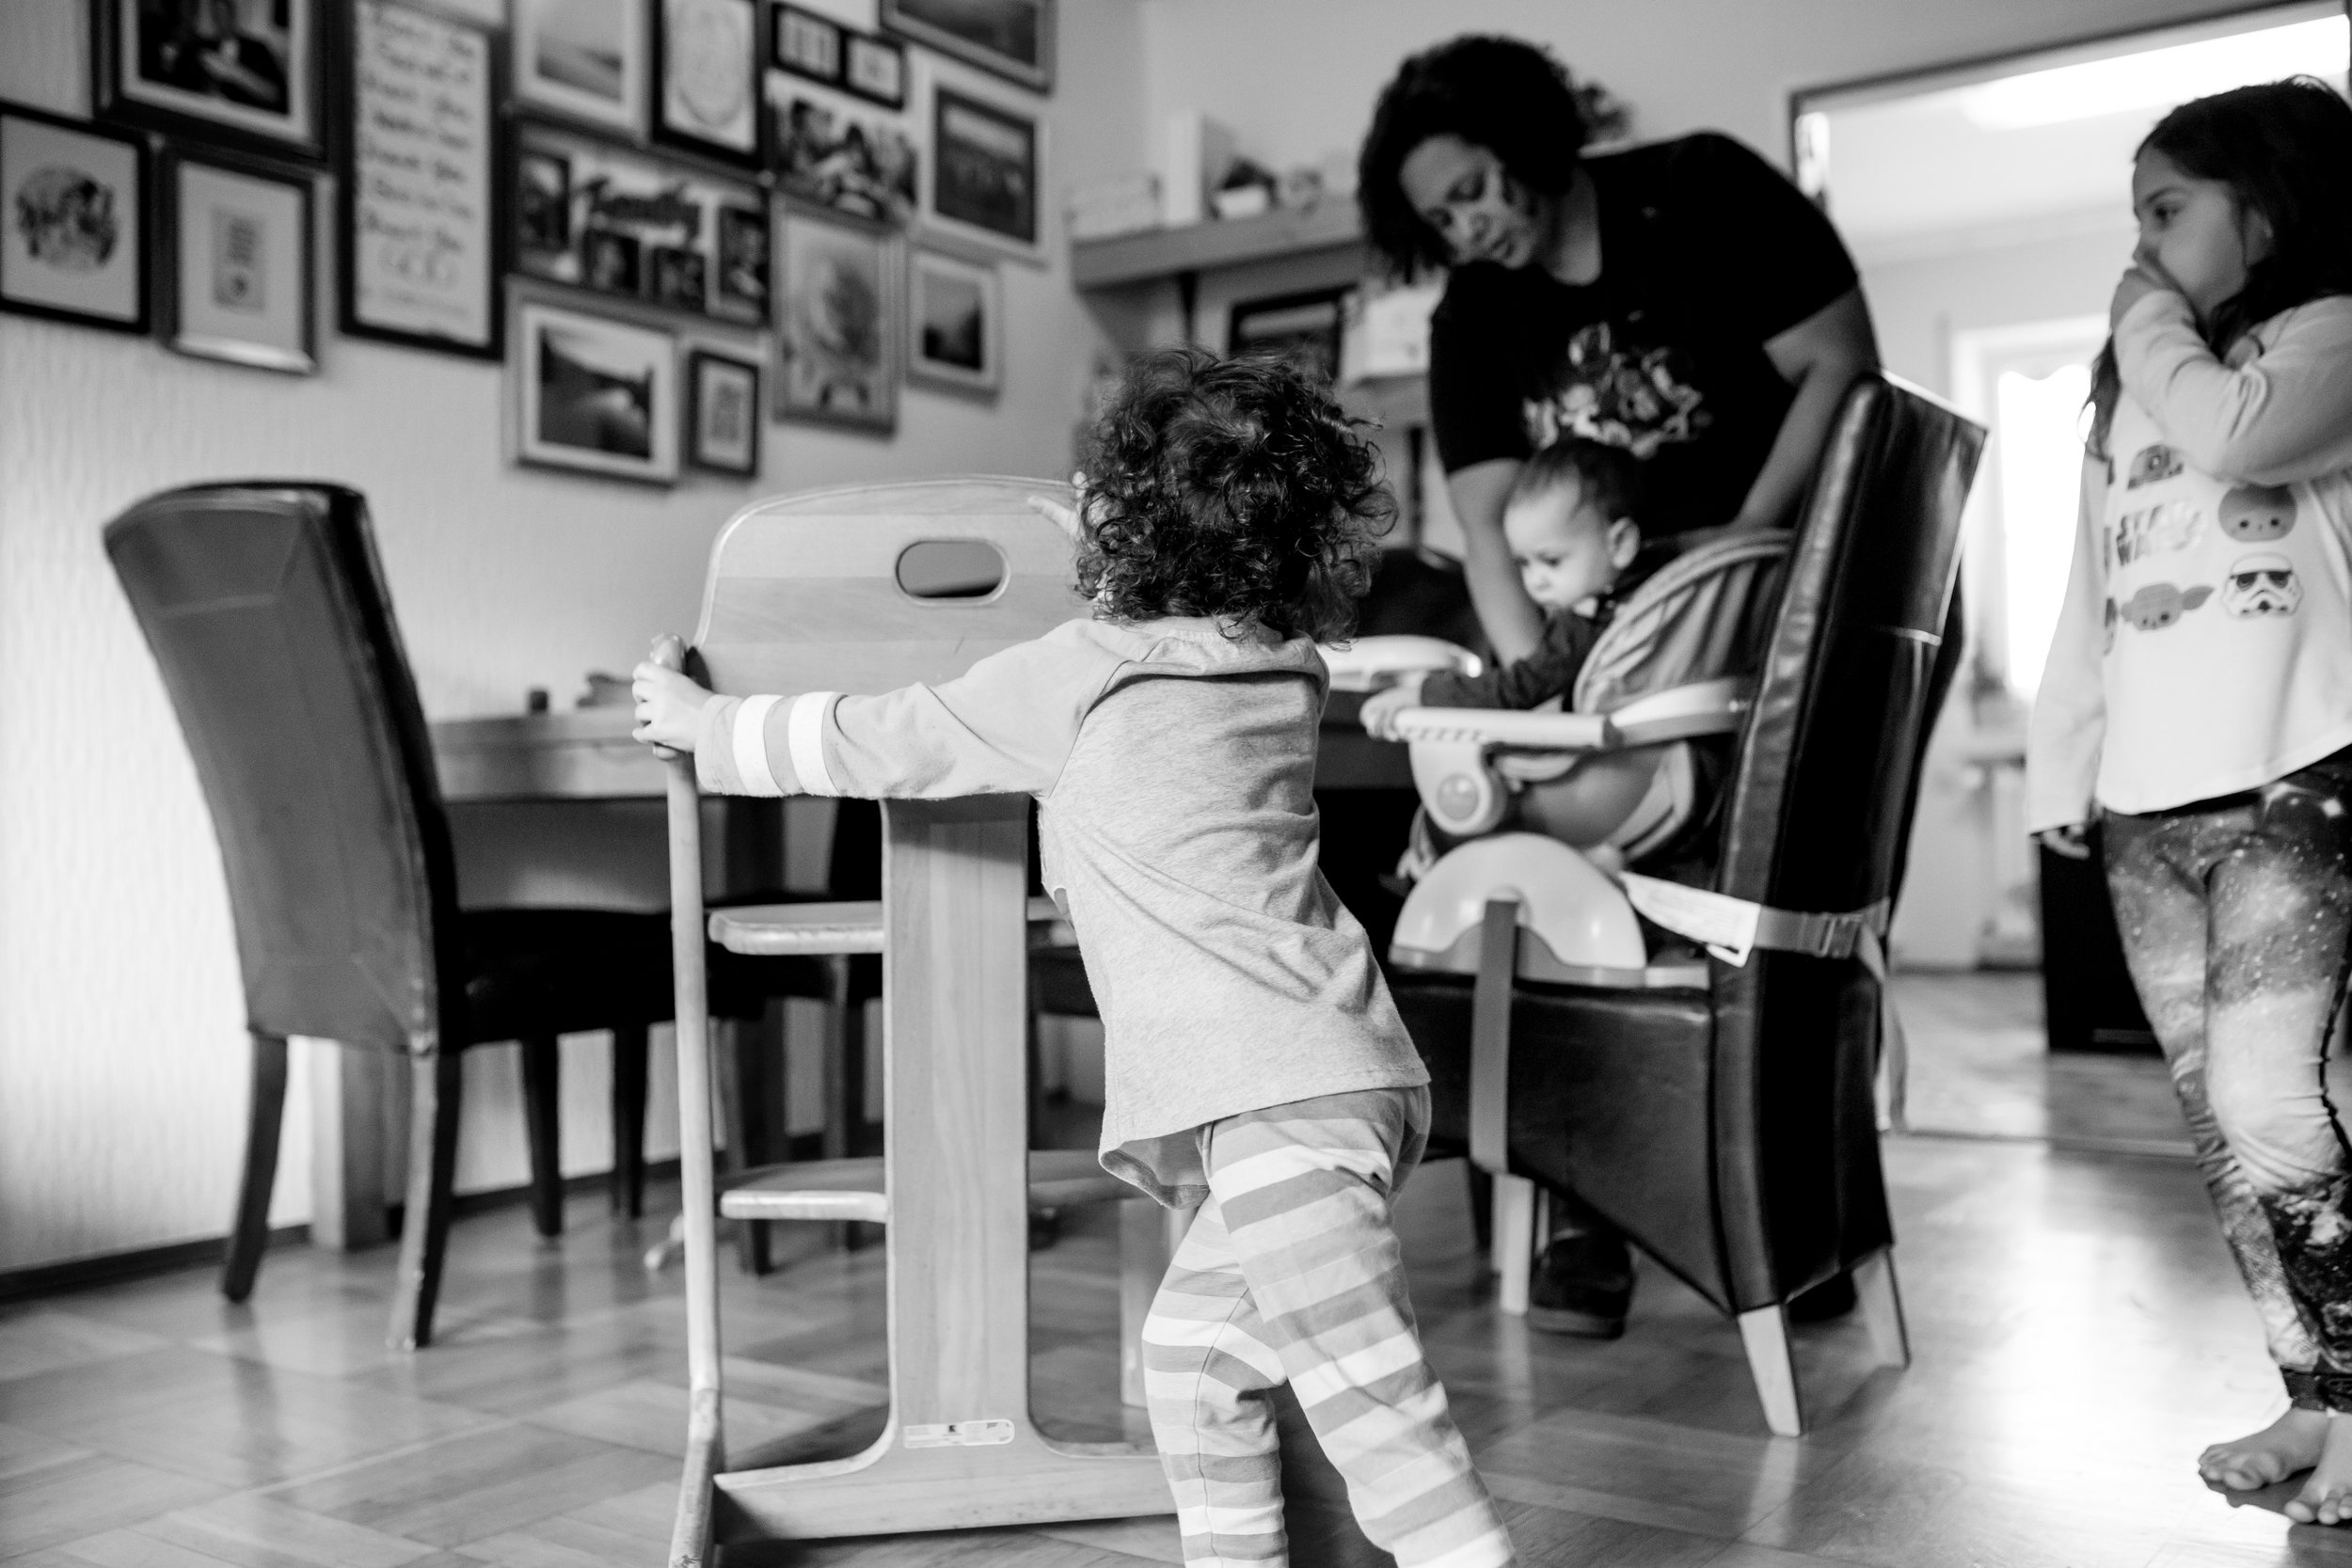 Girl scoots high chair up to table